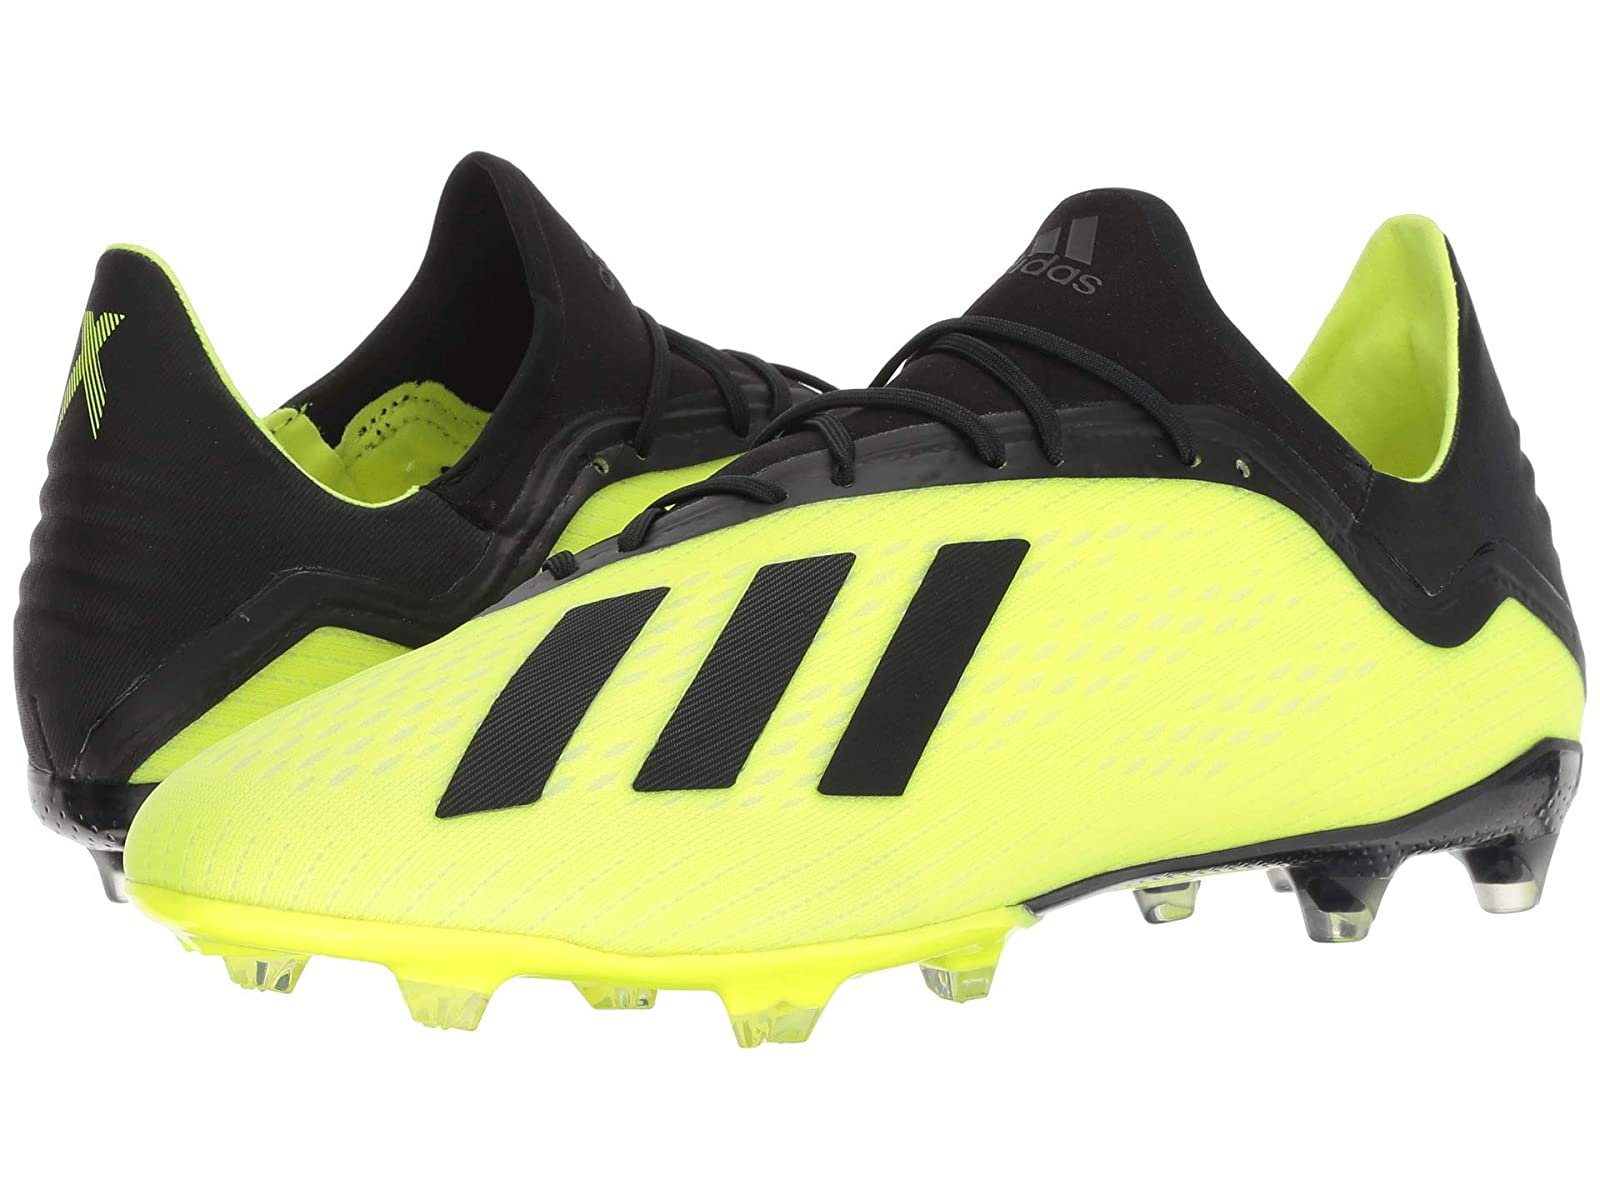 adidas X 18.2 FG World Cup PackAtmospheric grades have affordable shoes